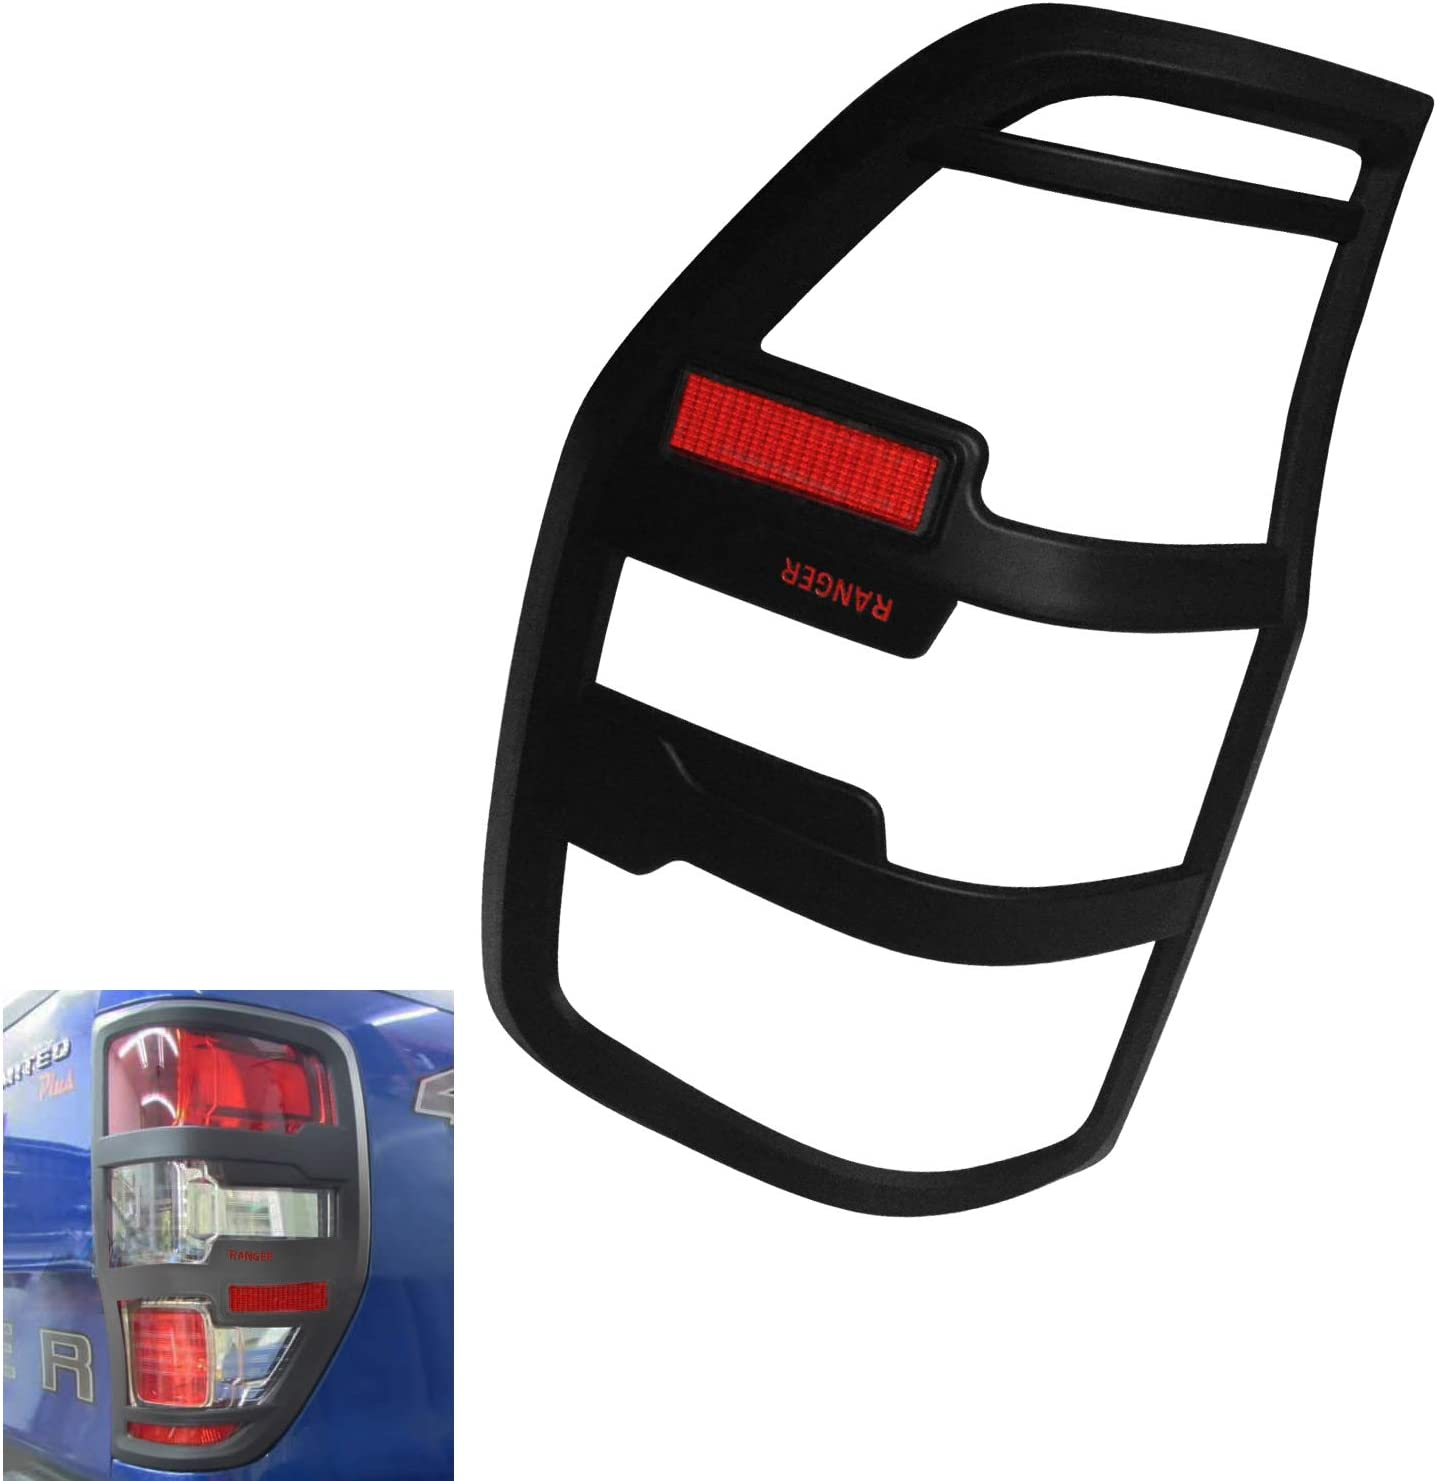 DOOd Exterior auto Vehicle Accessories Rear Trim Lights Covers headlamp Cover Tail Lights Covers fit for Ford Ranger T7 T8 XL XLS XLT wildtrak 2018-2020 Pickup car Parts